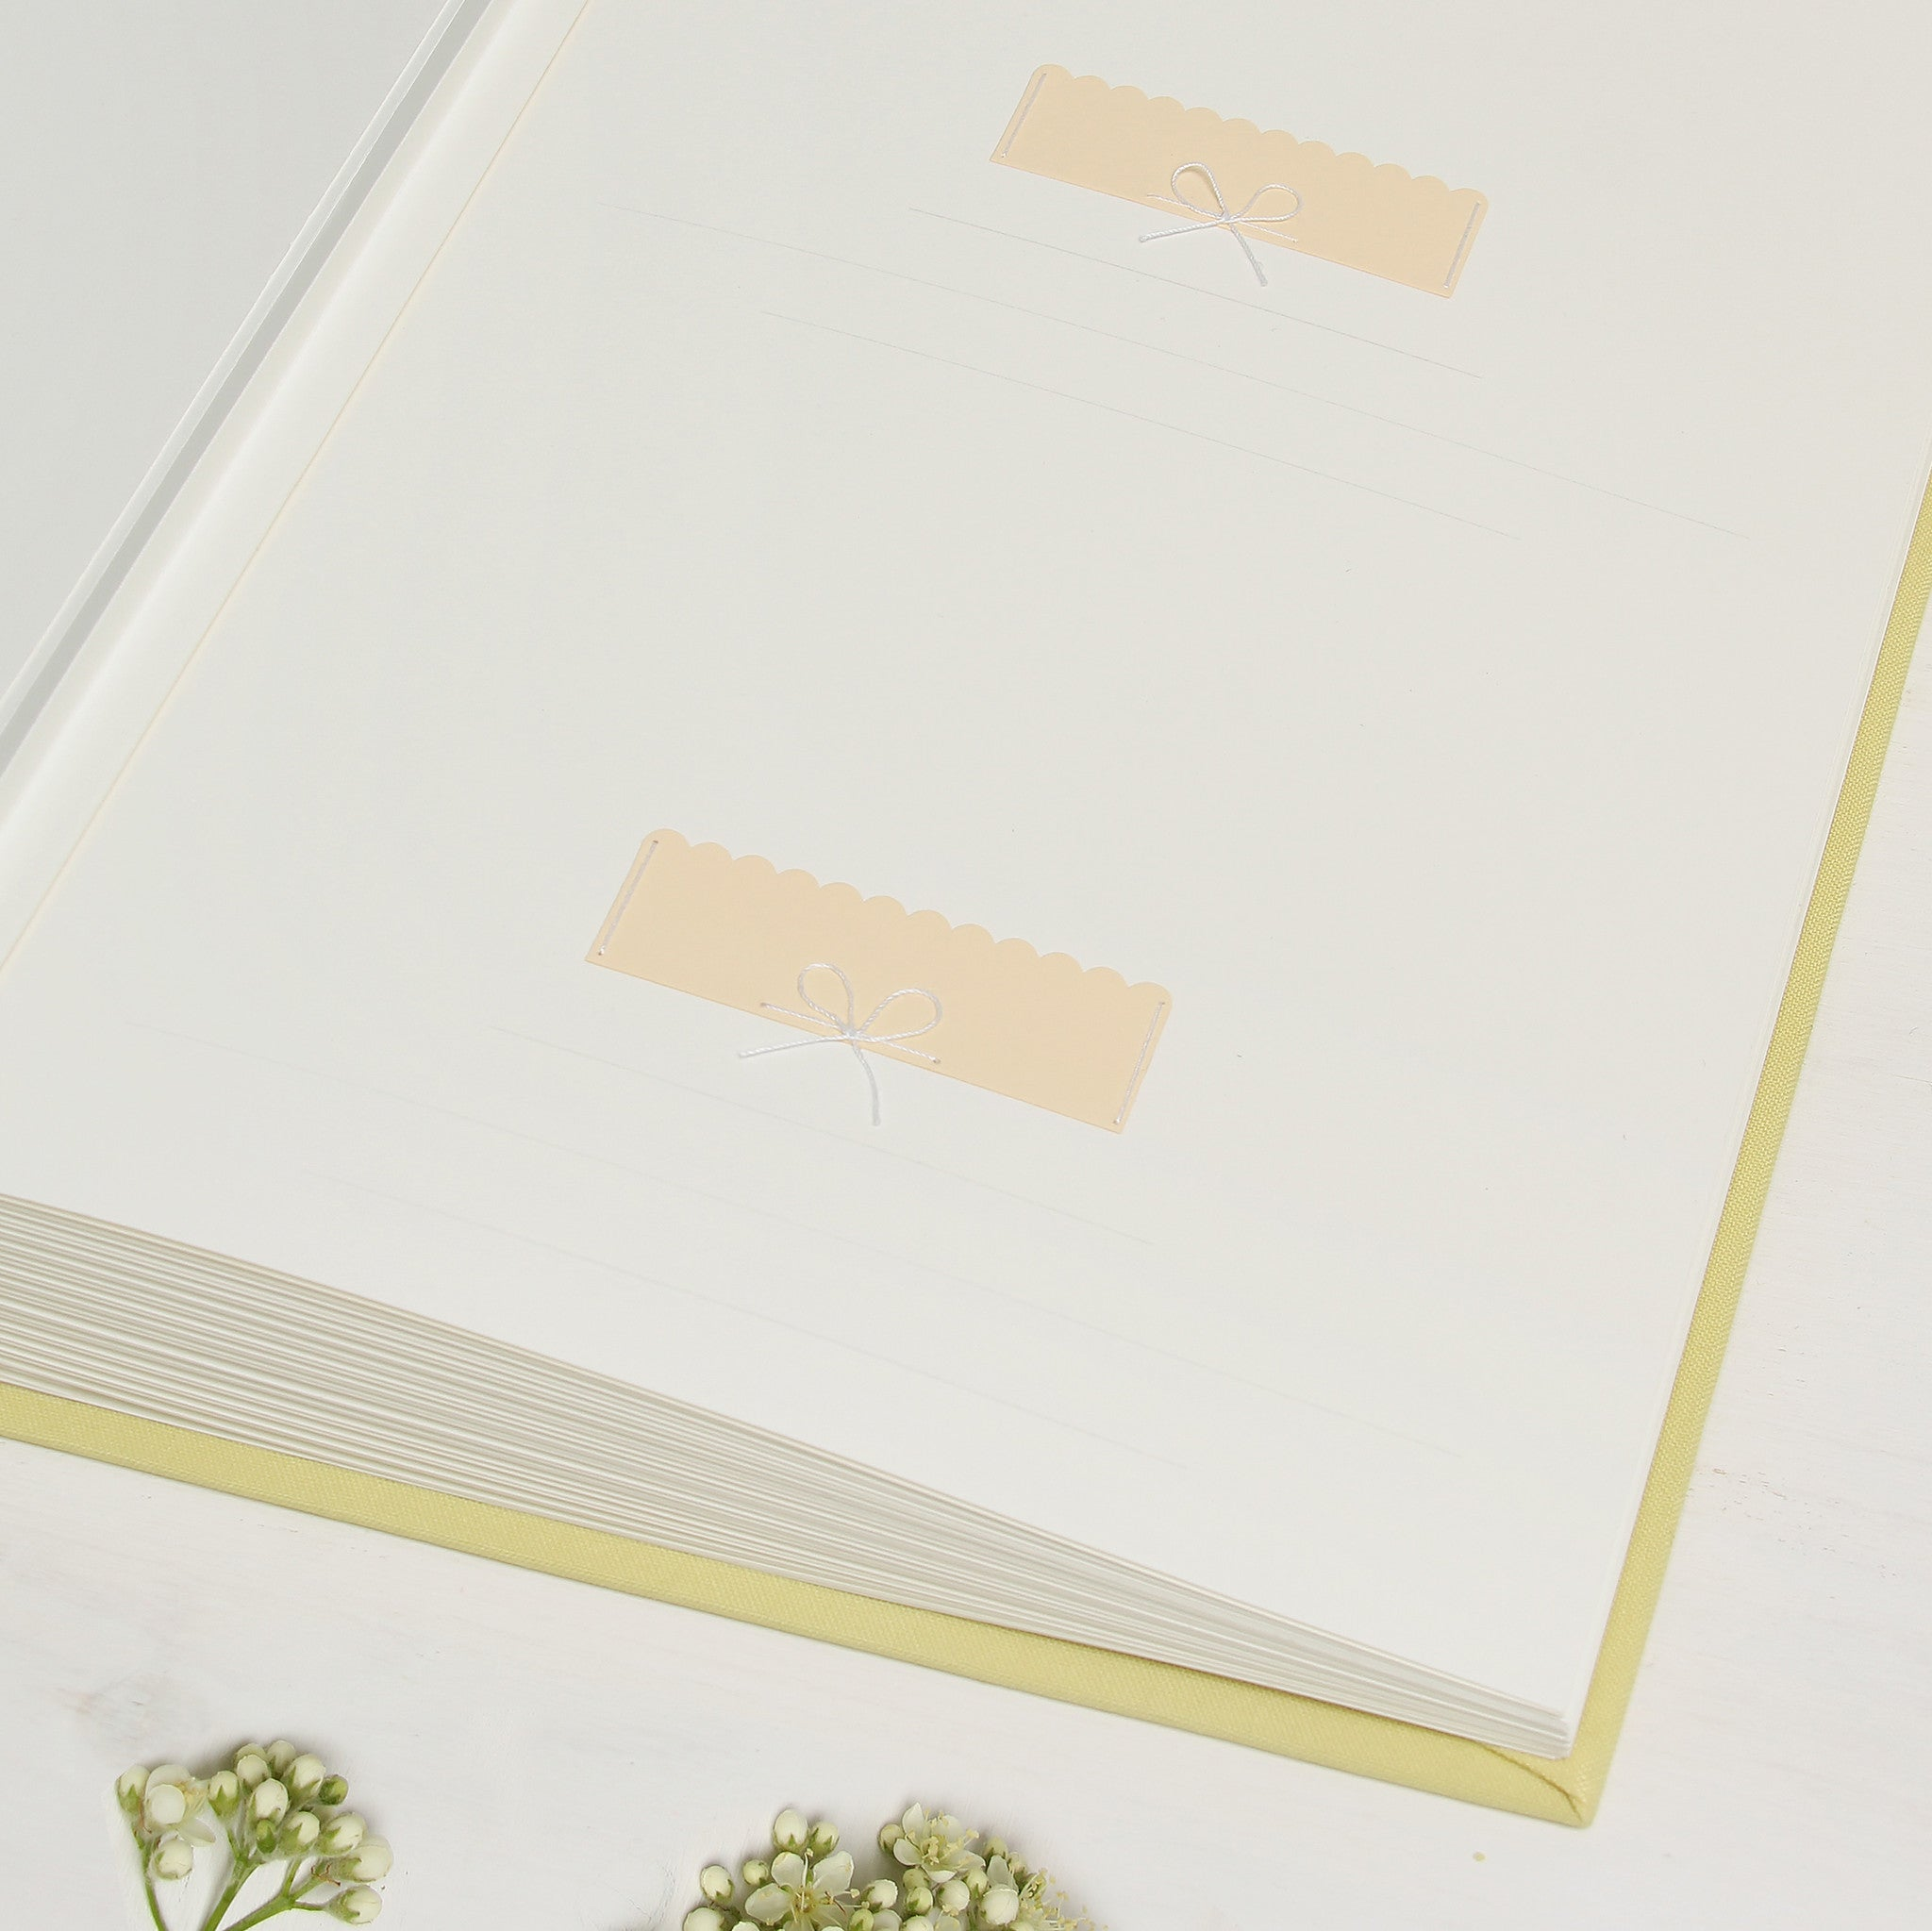 Instax Wedding Guest Book Sign in Book Album Yellow with Paper Label - Liumy